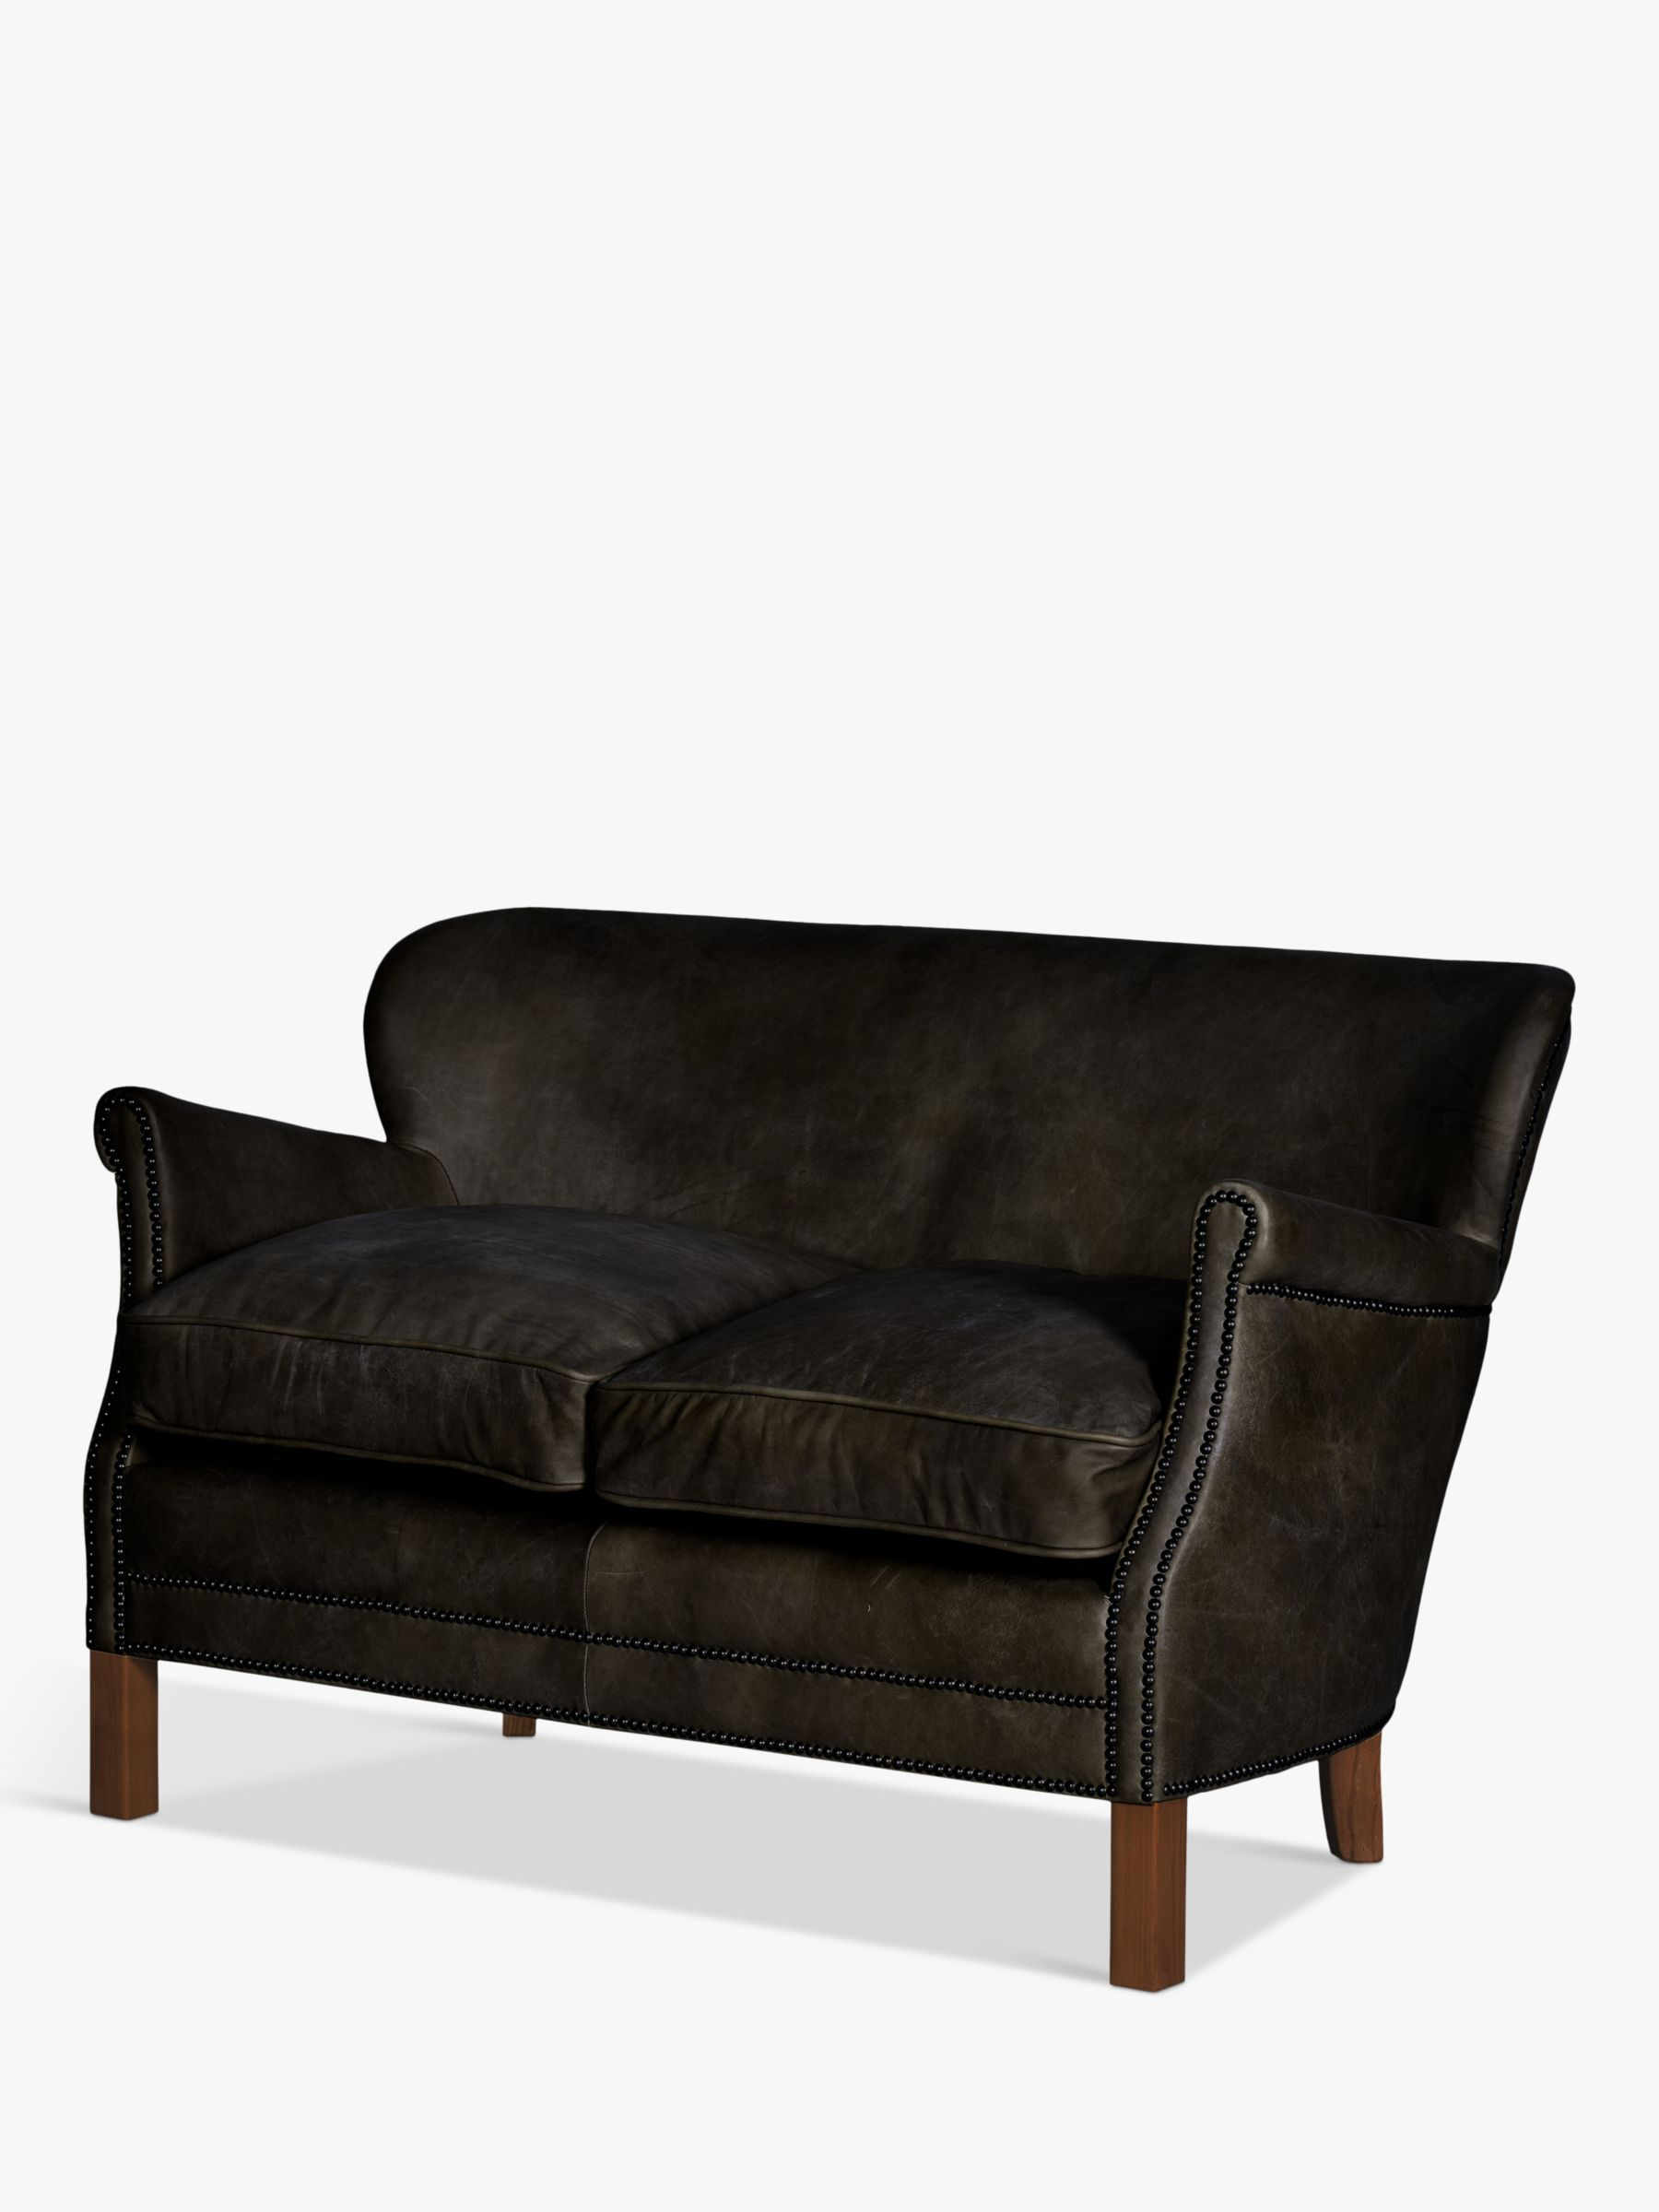 Halo Little Professor Petite 2 Seater Leather Sofa | Leather